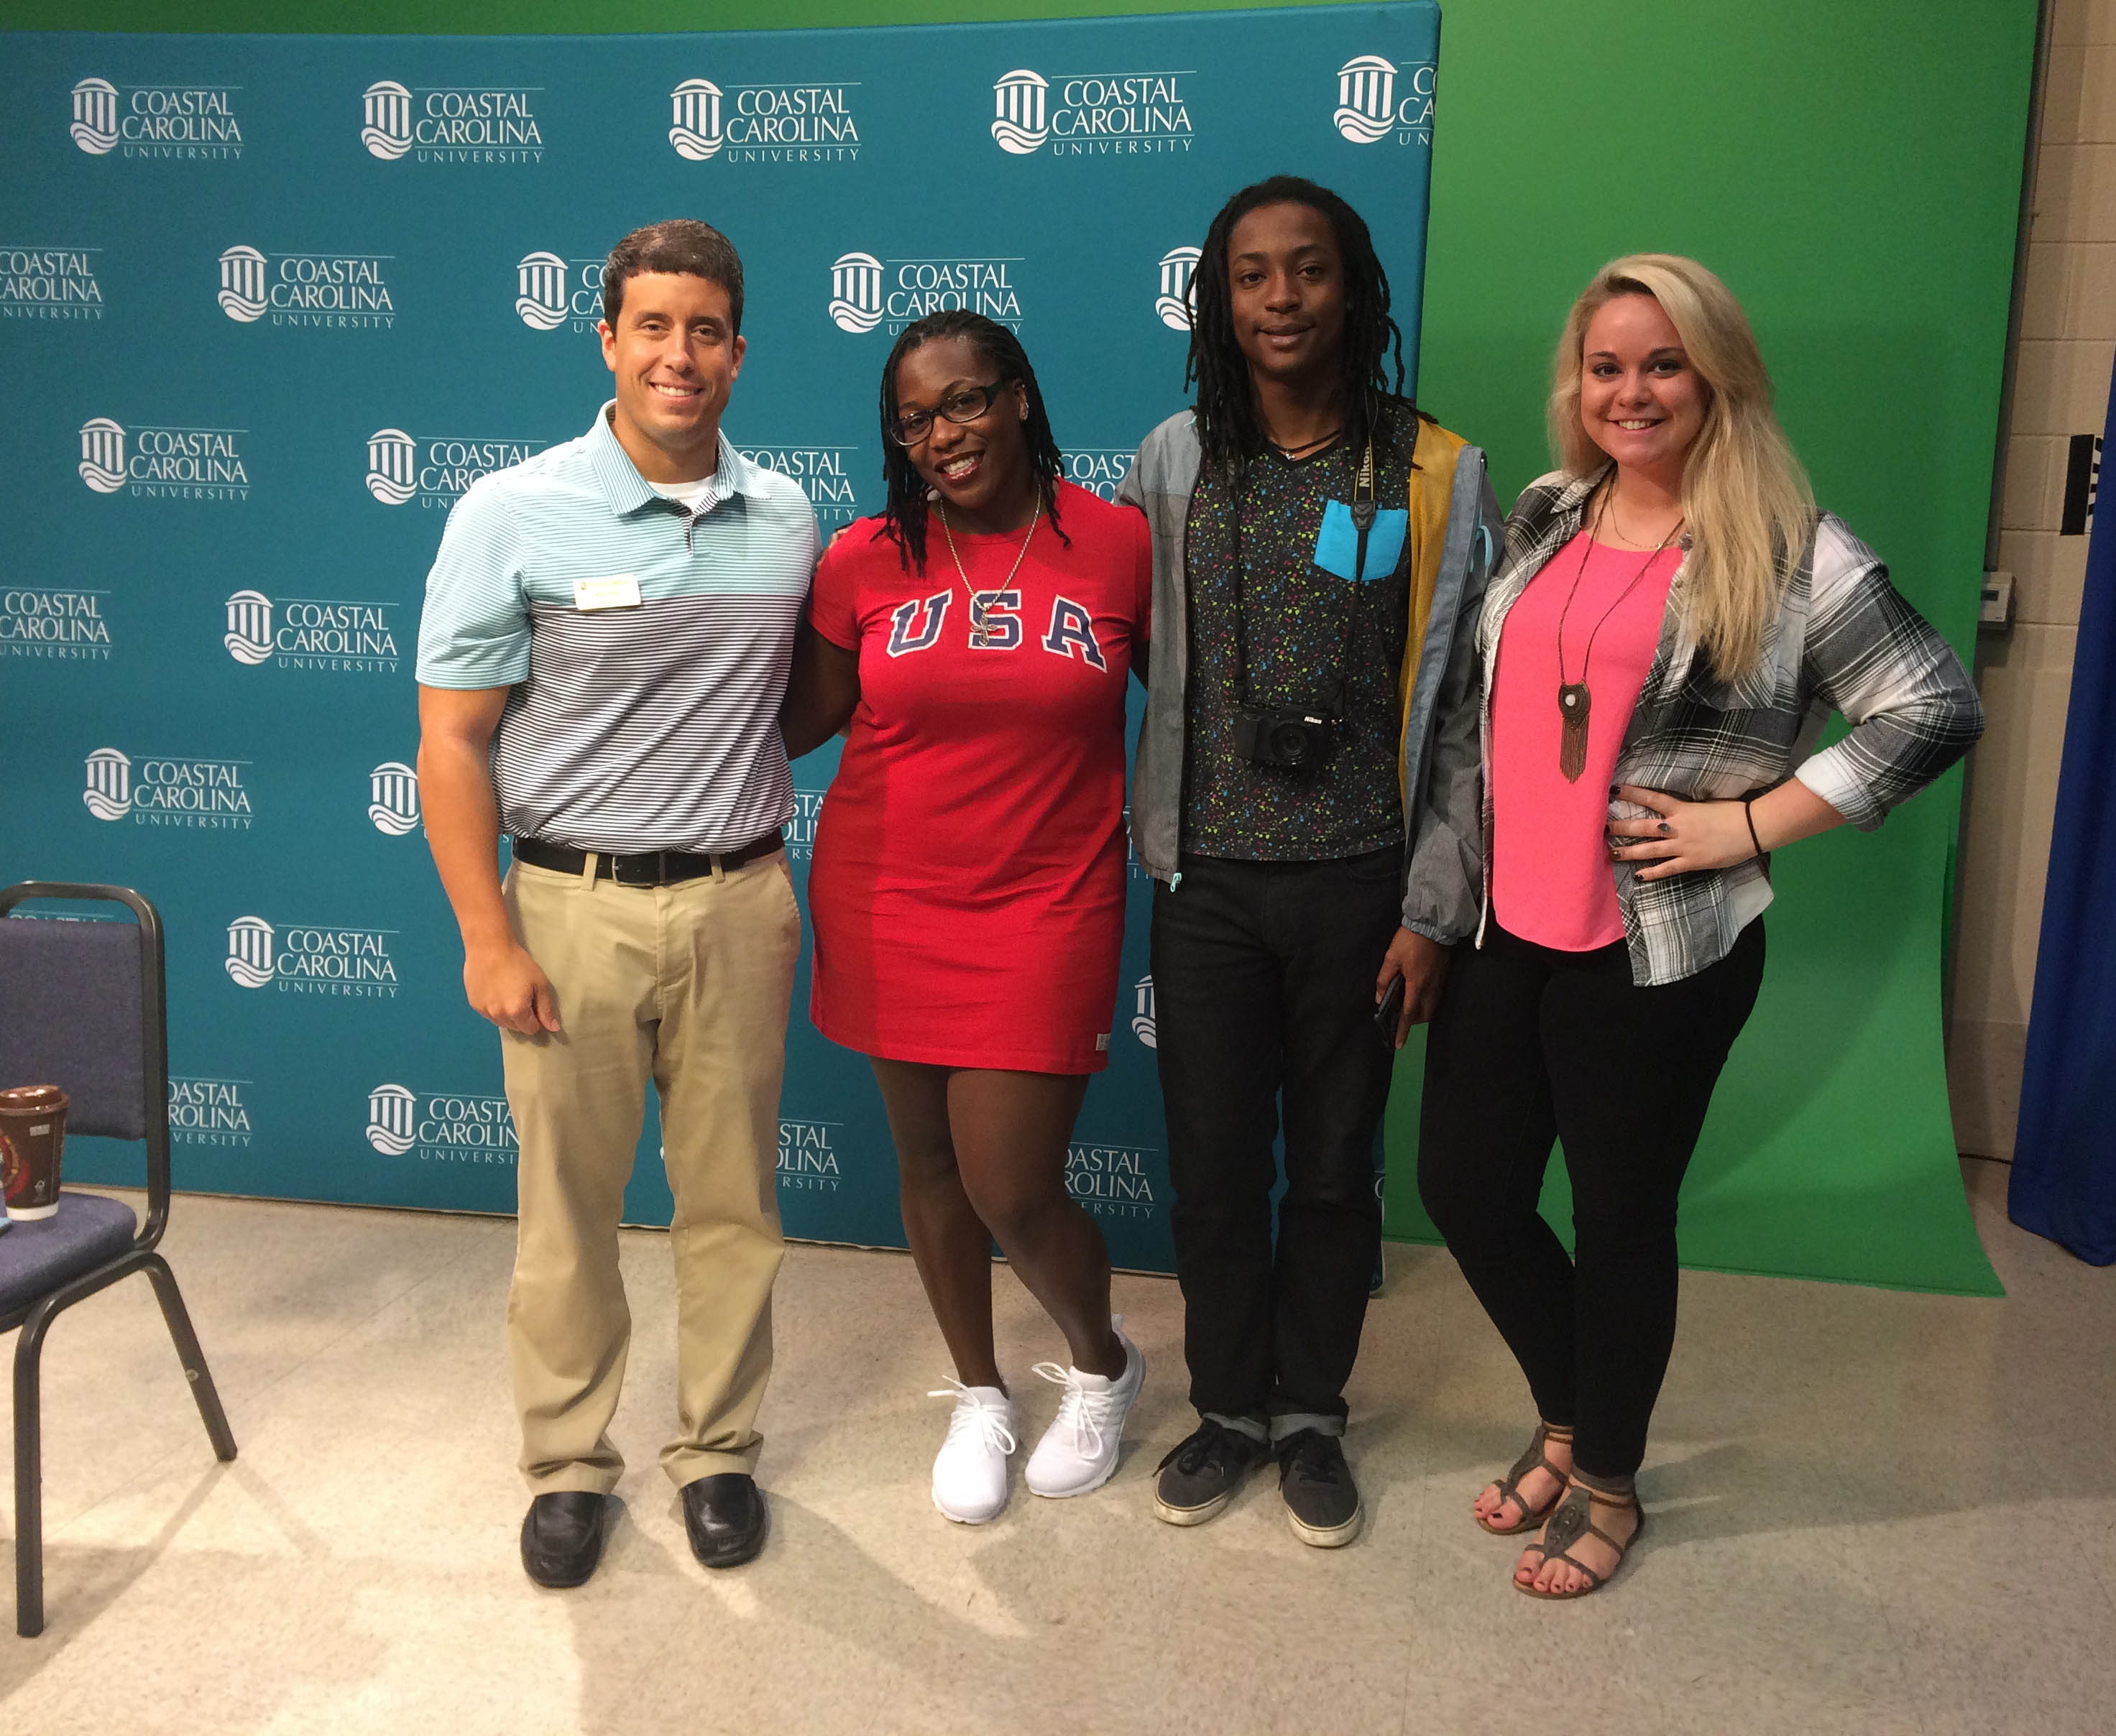 Our social media team with three-time Olympian Amber Campbell today (from l-r: Me, Amber Campbell, Eddie, Lauren).